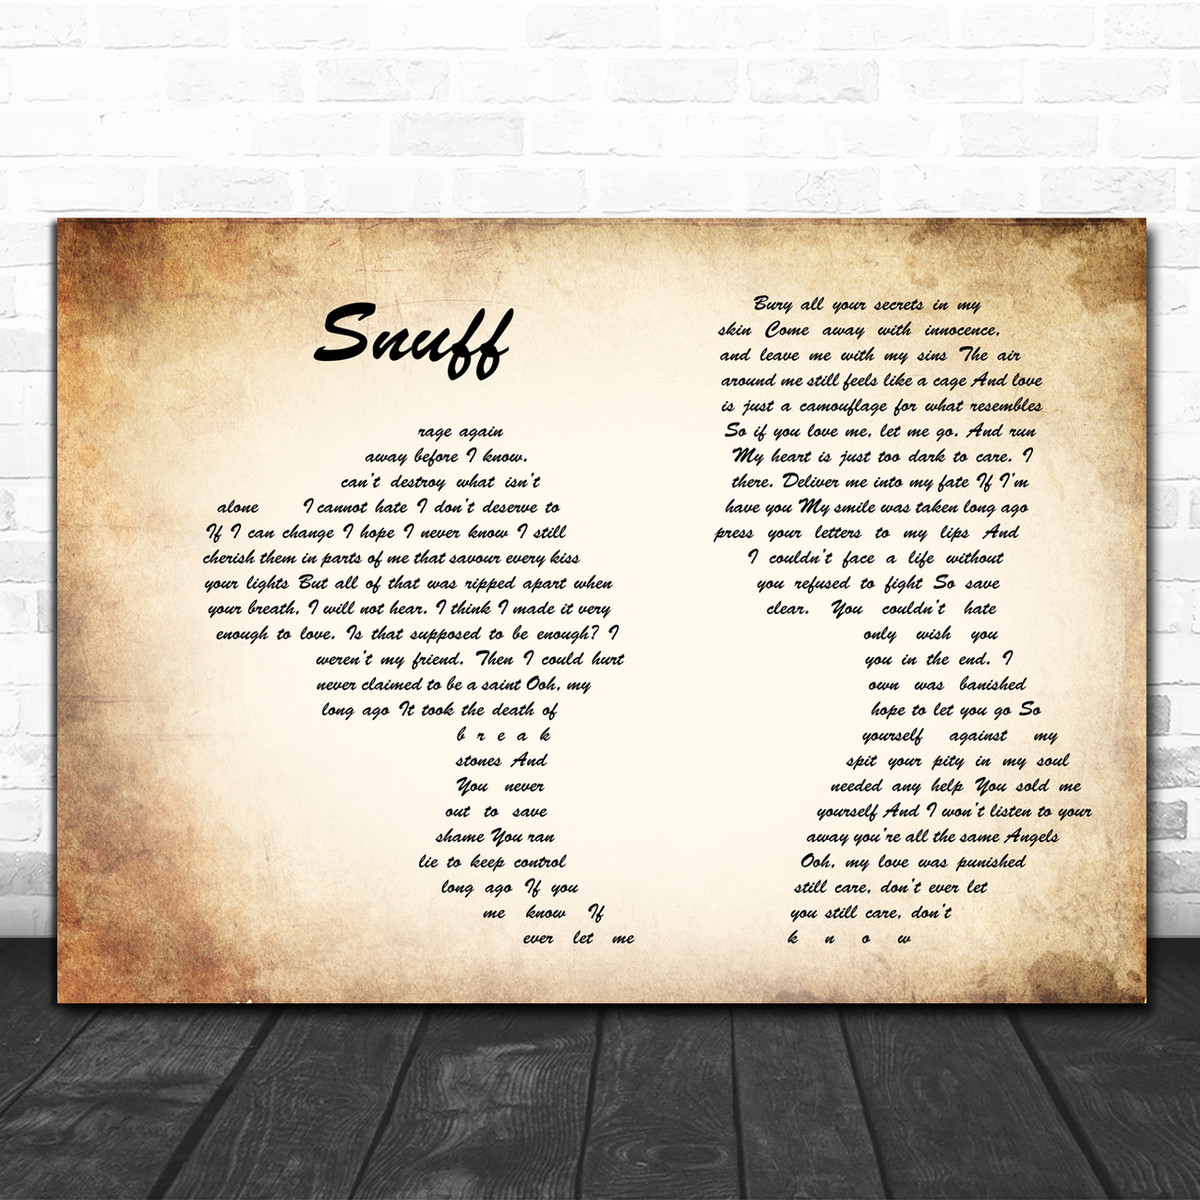 Heart Snuff Lyrics Canvas Bury All Your Secrets In My Skin Song Signature Poster Painting Hang Wall Prints Vertical Posters Living Room Bedroom Home Decor Hang Decoration Gift For Friends Family Paintings